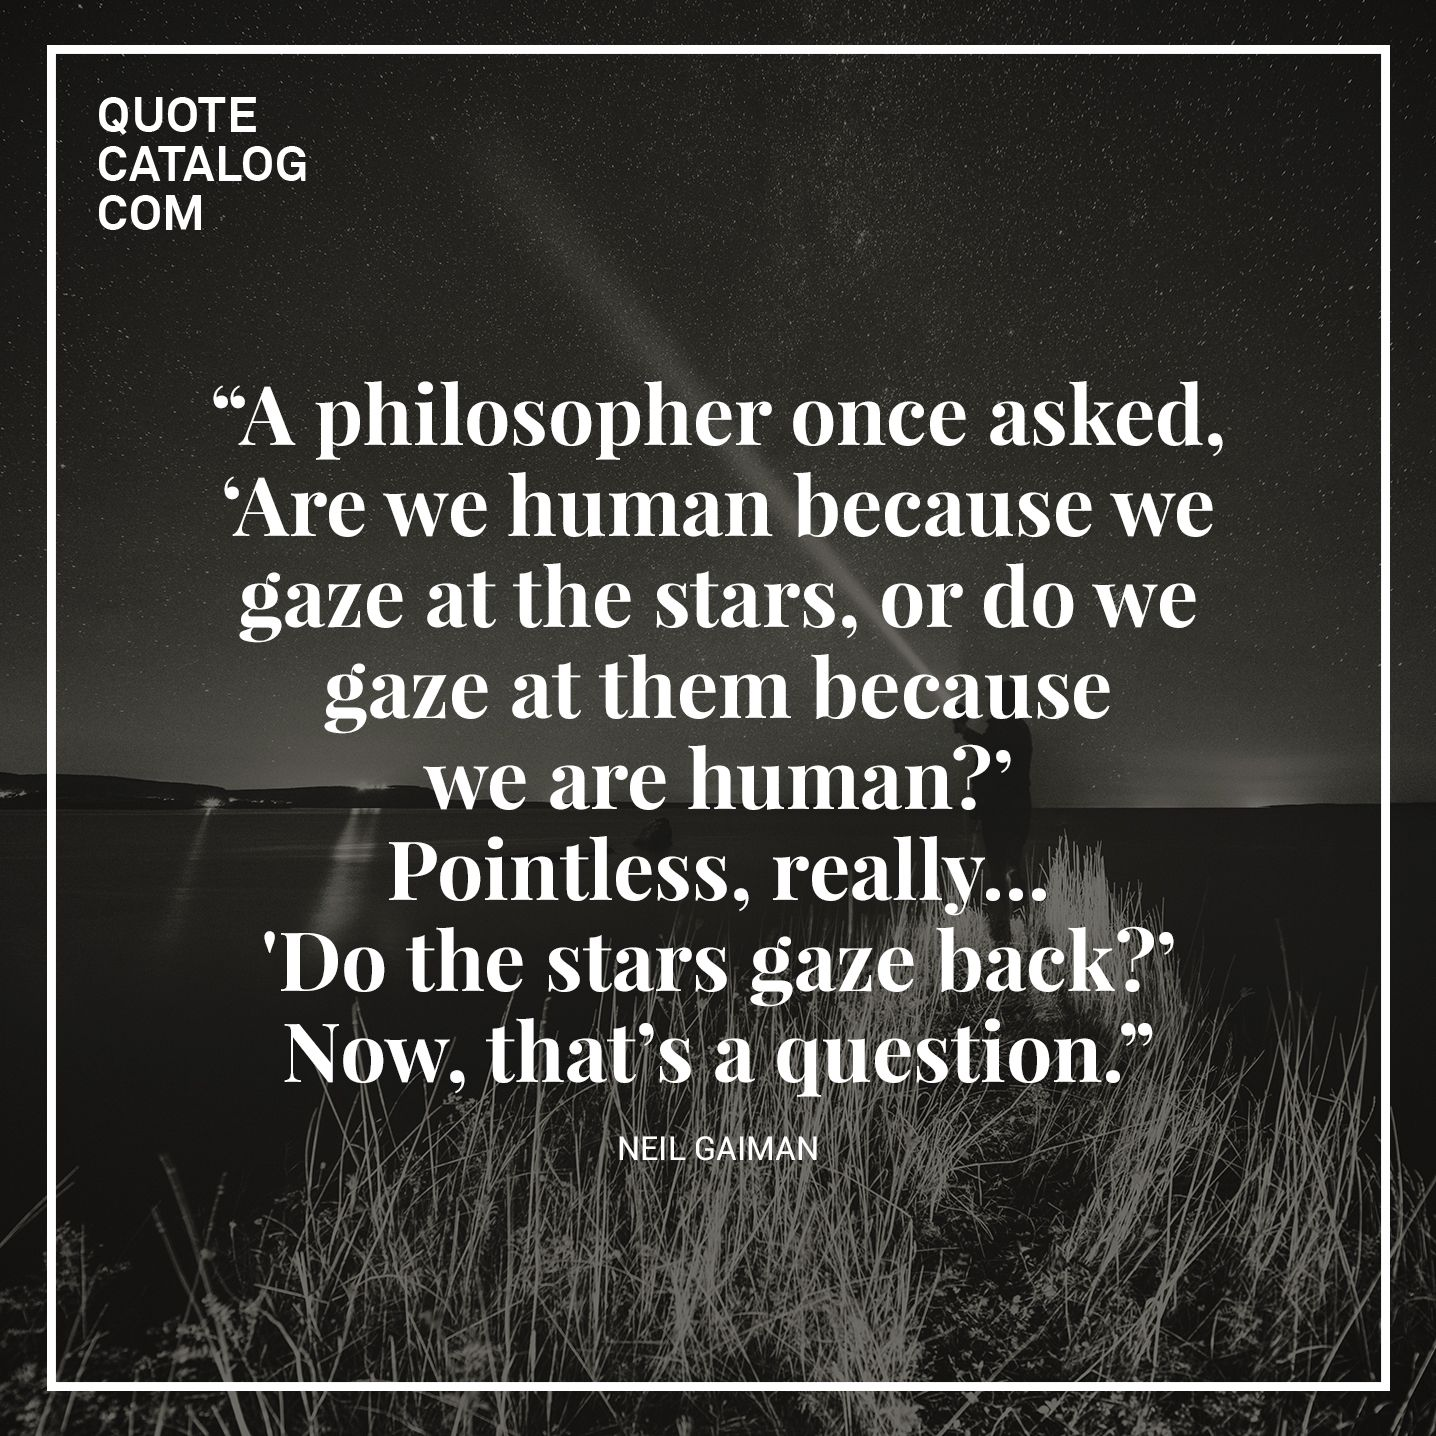 How do you know such question is truly philosophical?